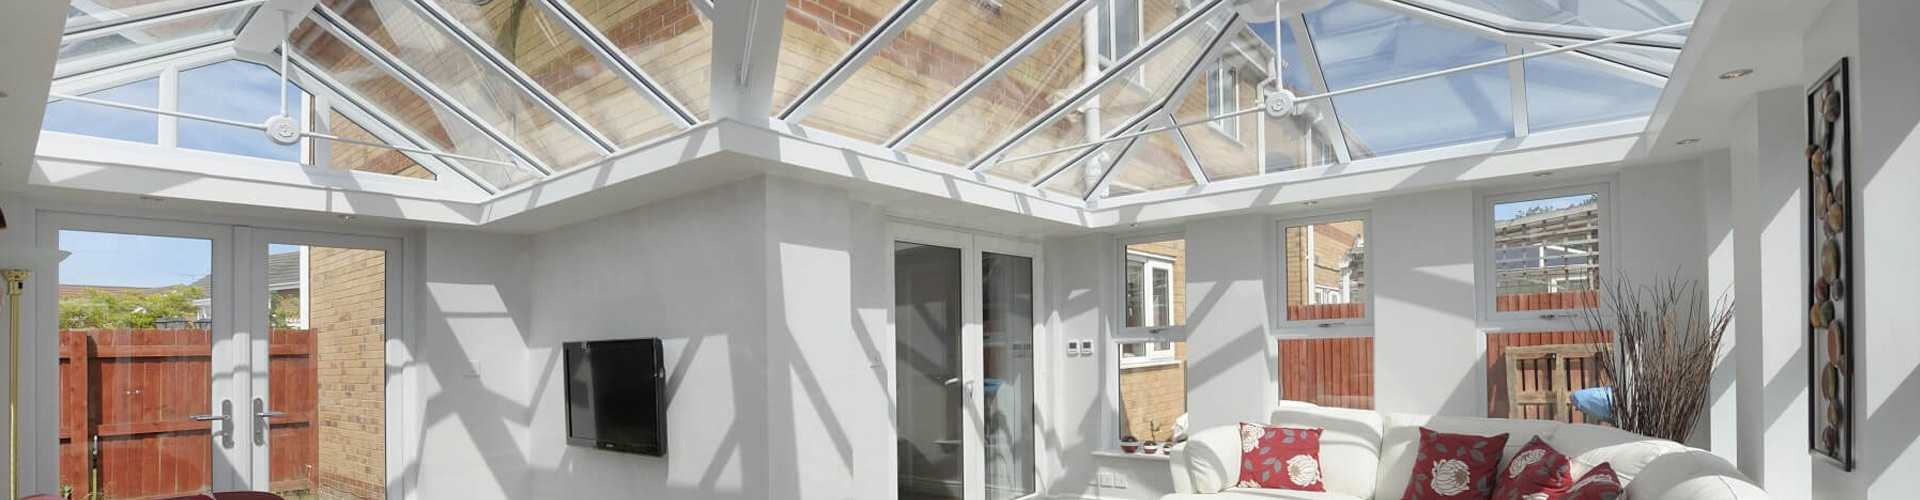 Glass Roof Conservatory